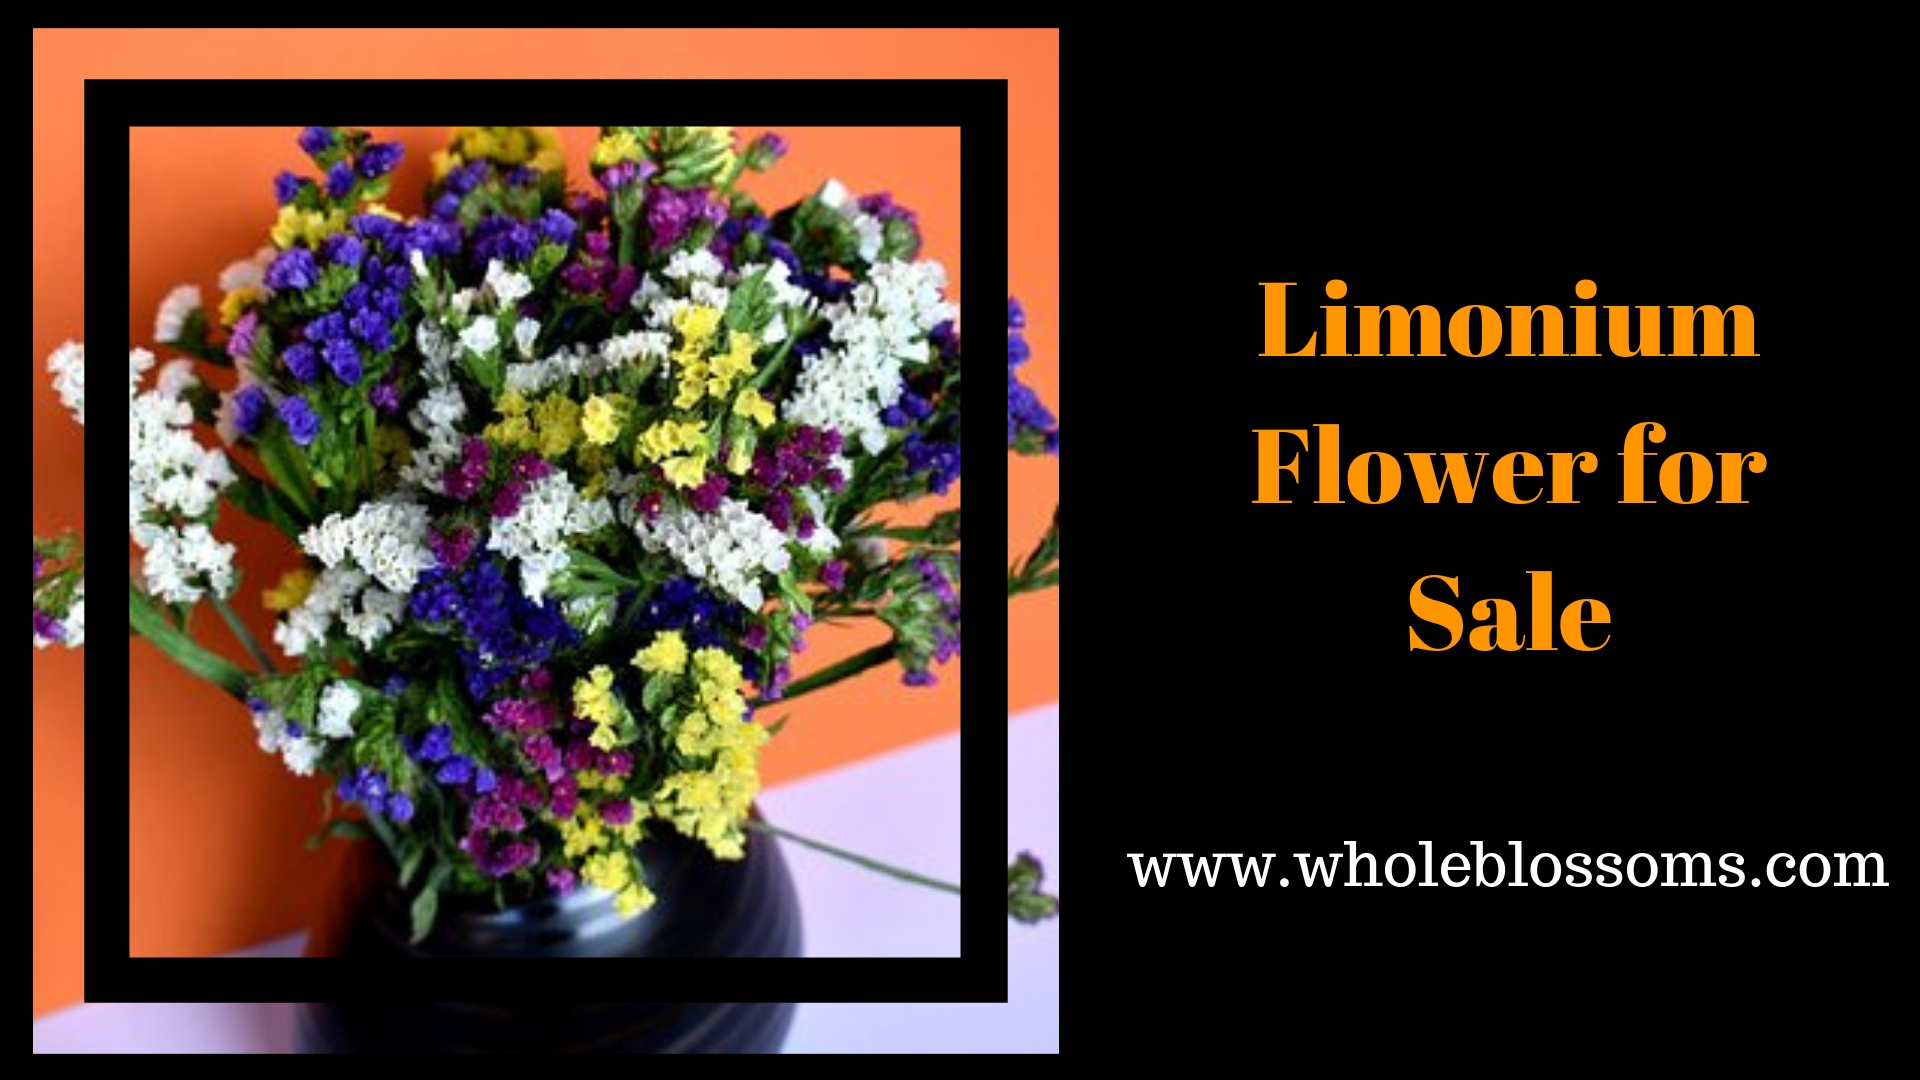 Purchase Gorgeous Limonium Flowers for Sale